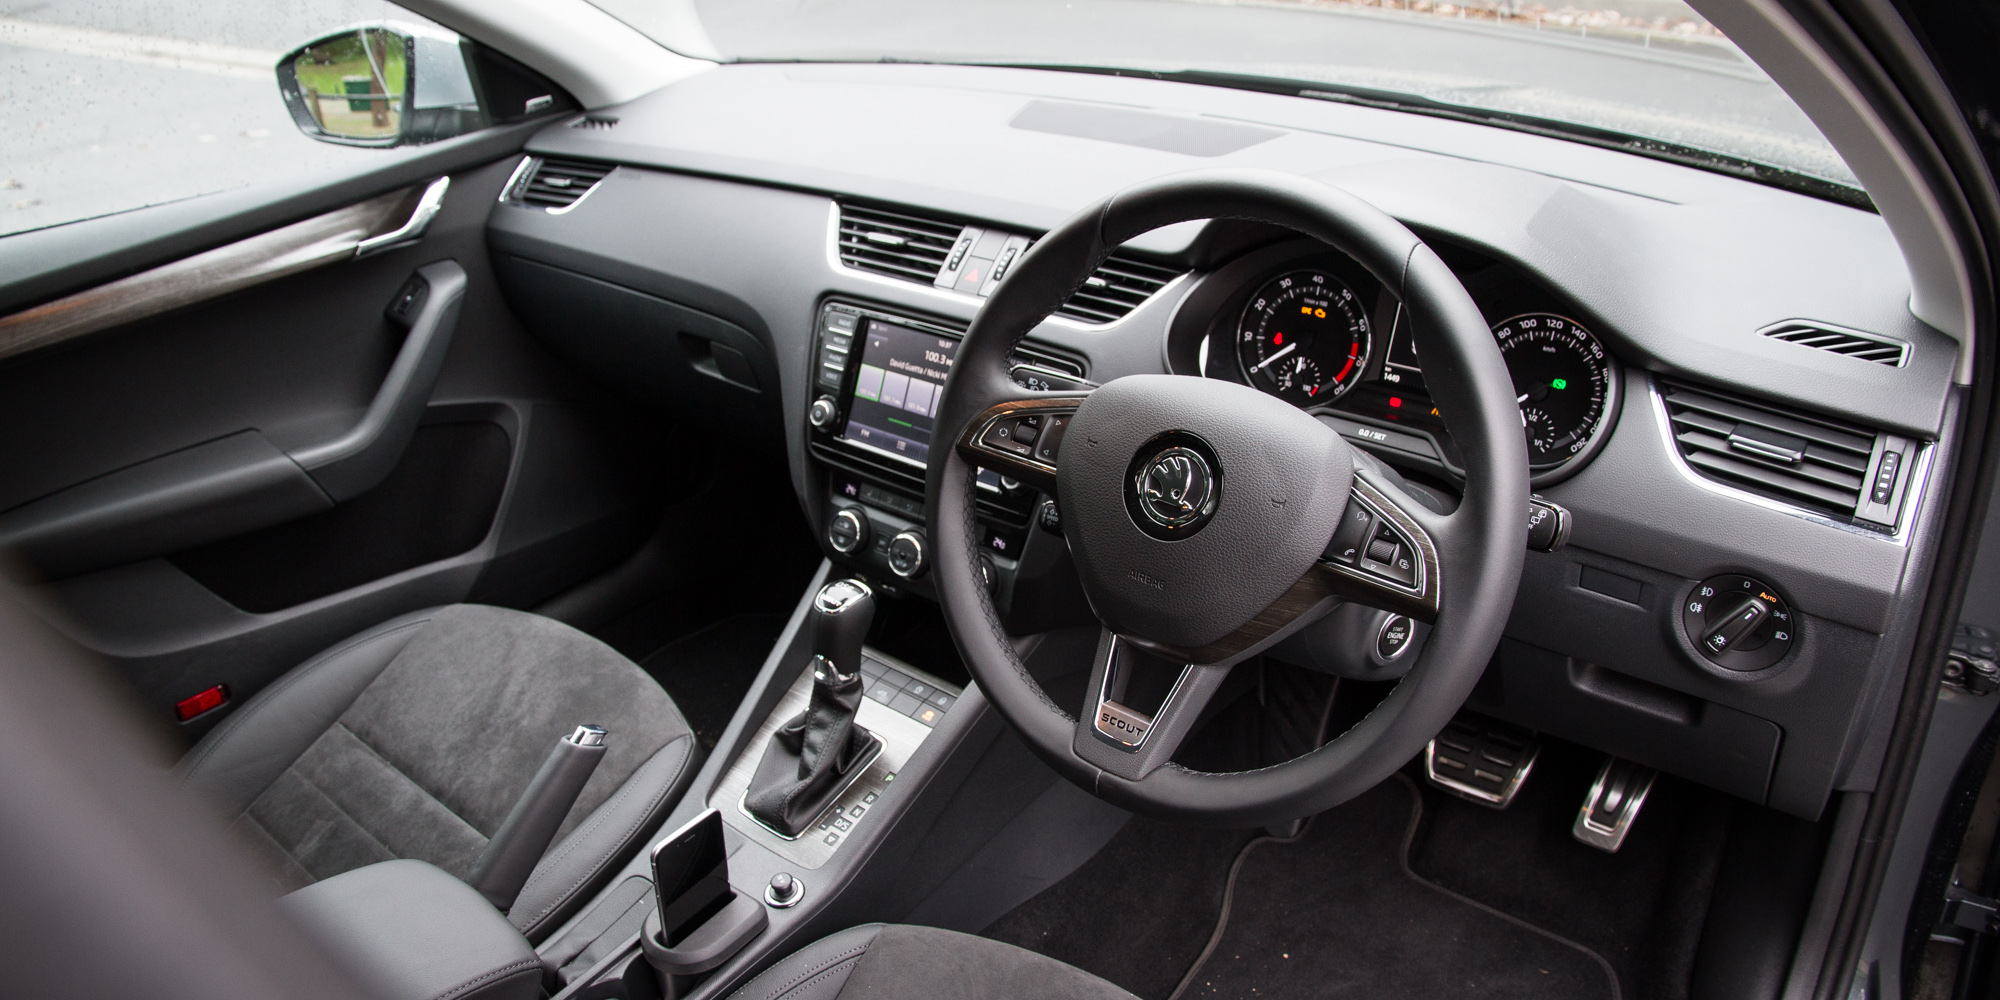 2016 Skoda Octavia Scout Interior Steering (Photo 18 of 23)